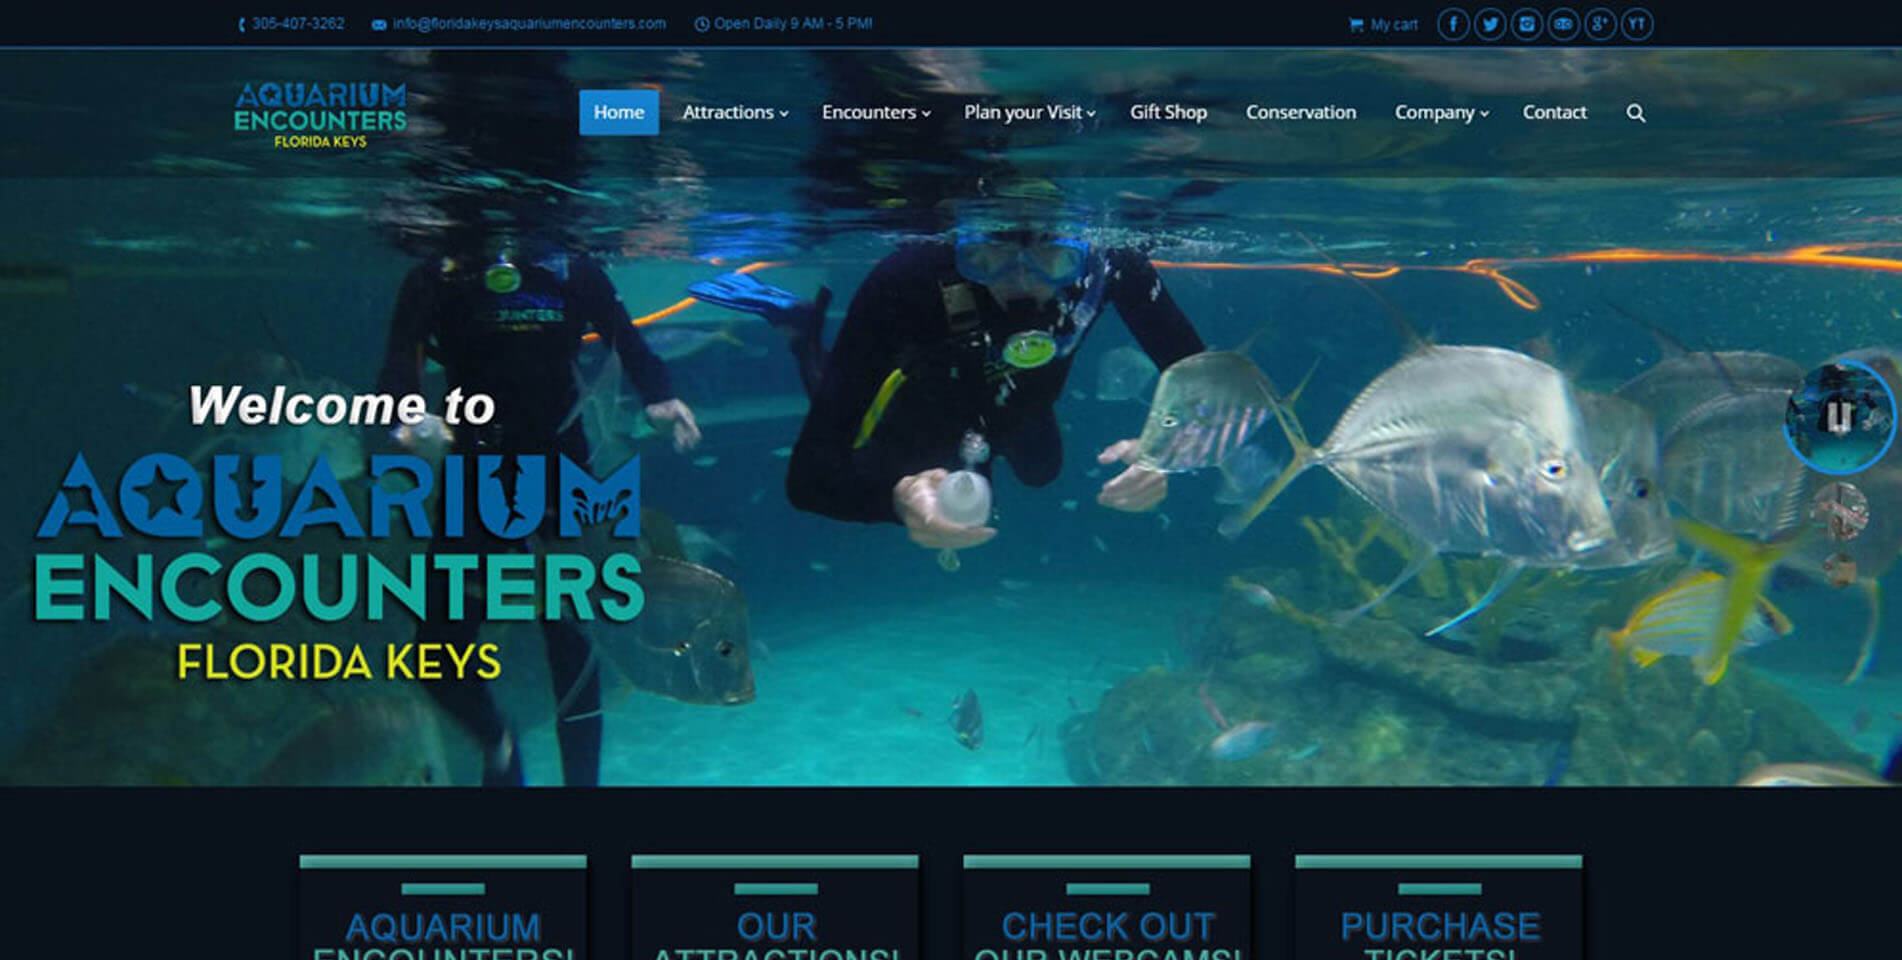 An image of the homepage of Florida Keys Aquarium Encounters, website created by Not Fade Away Marketing